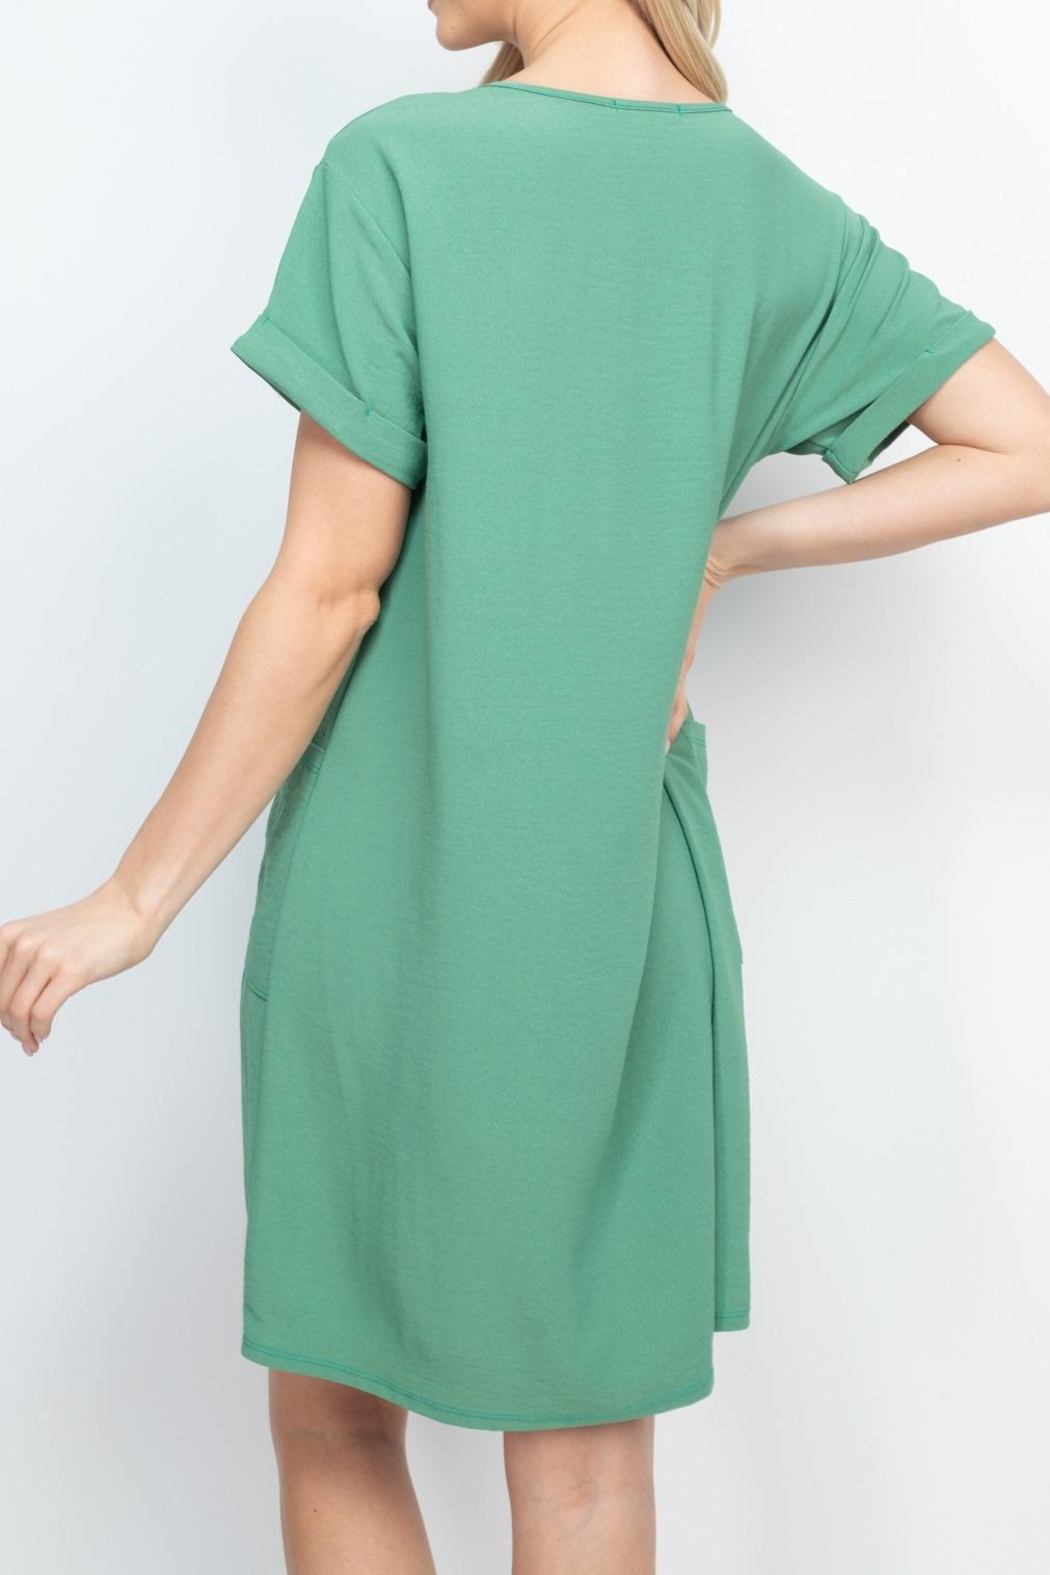 Riah Fashion Rolled-Sleeve-Front-Pocket-Solid-Dress - Back Cropped Image